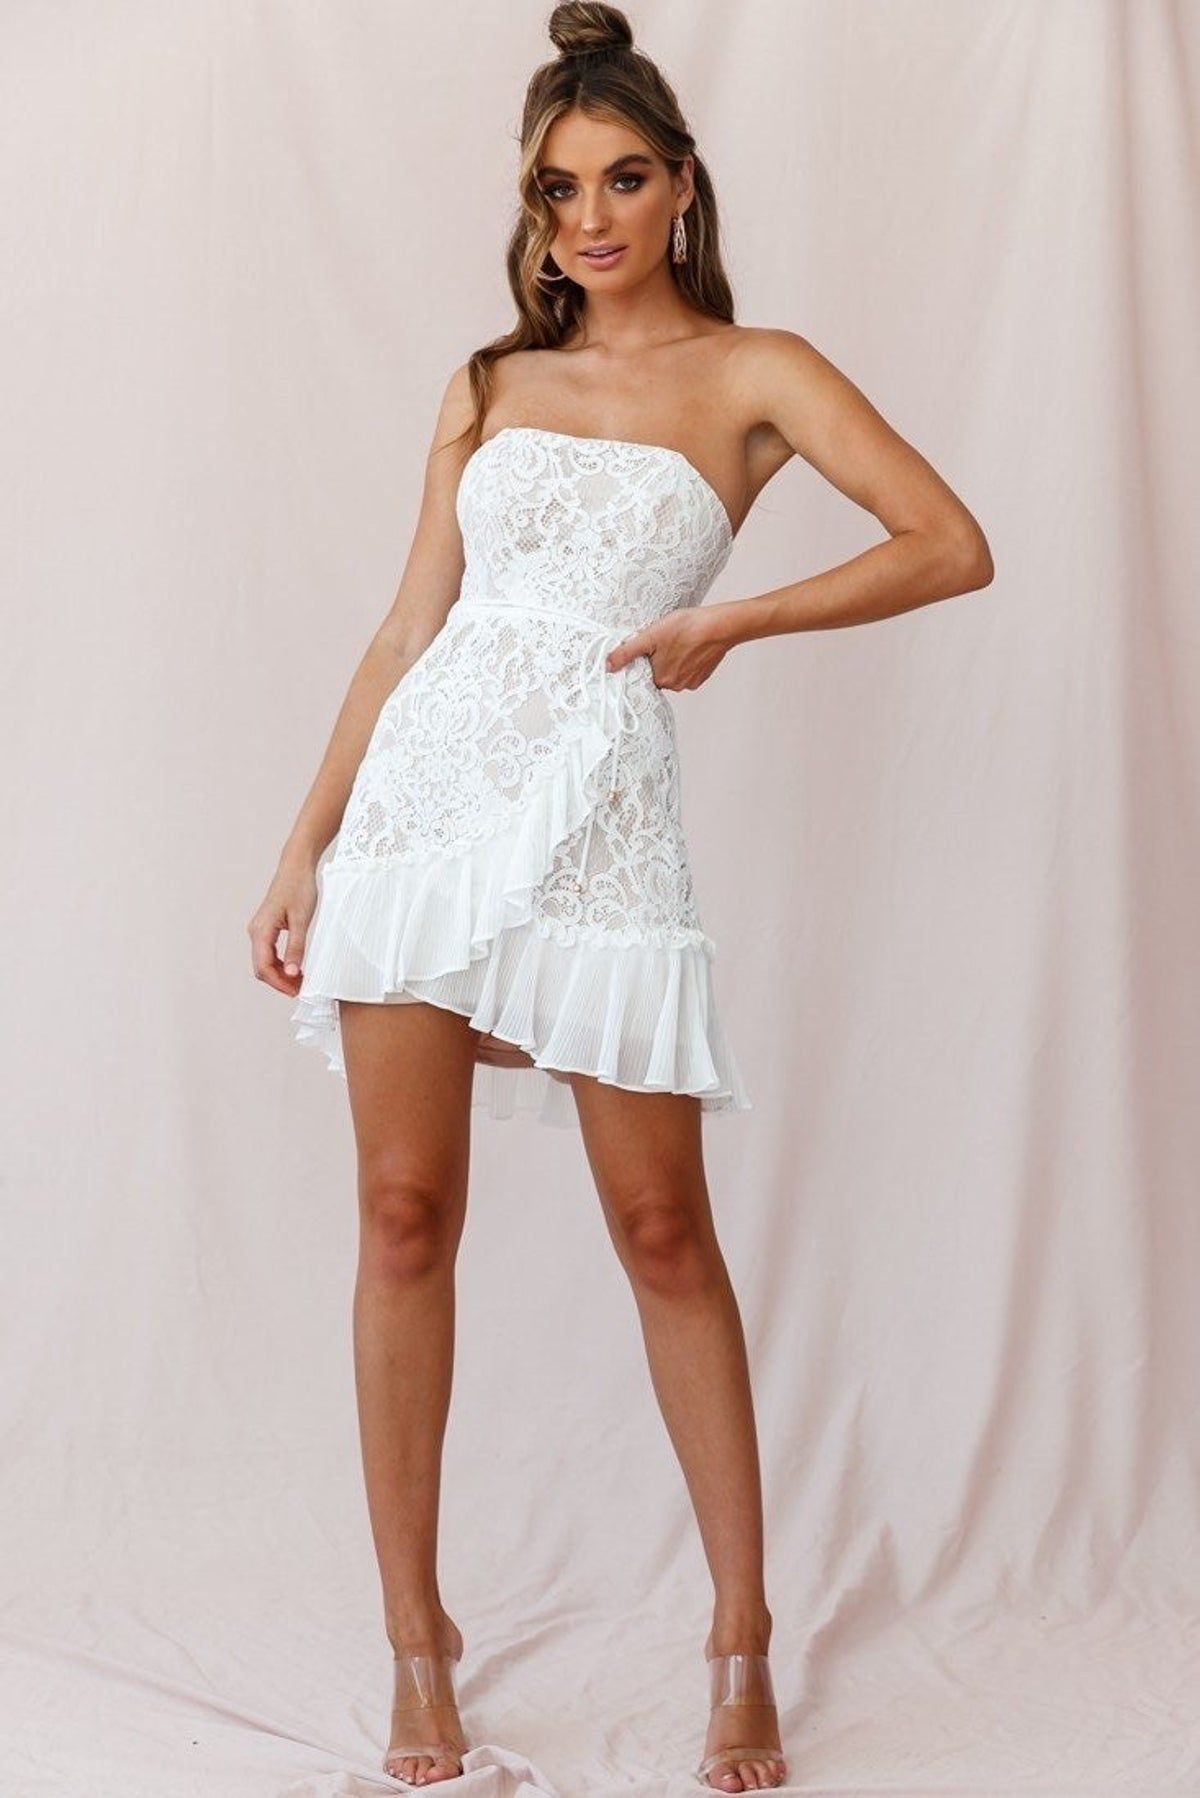 White Lace Strapless Dress In 2021 Strapless White Lace Dress White Short Dress Little White Dresses [ 1798 x 1200 Pixel ]